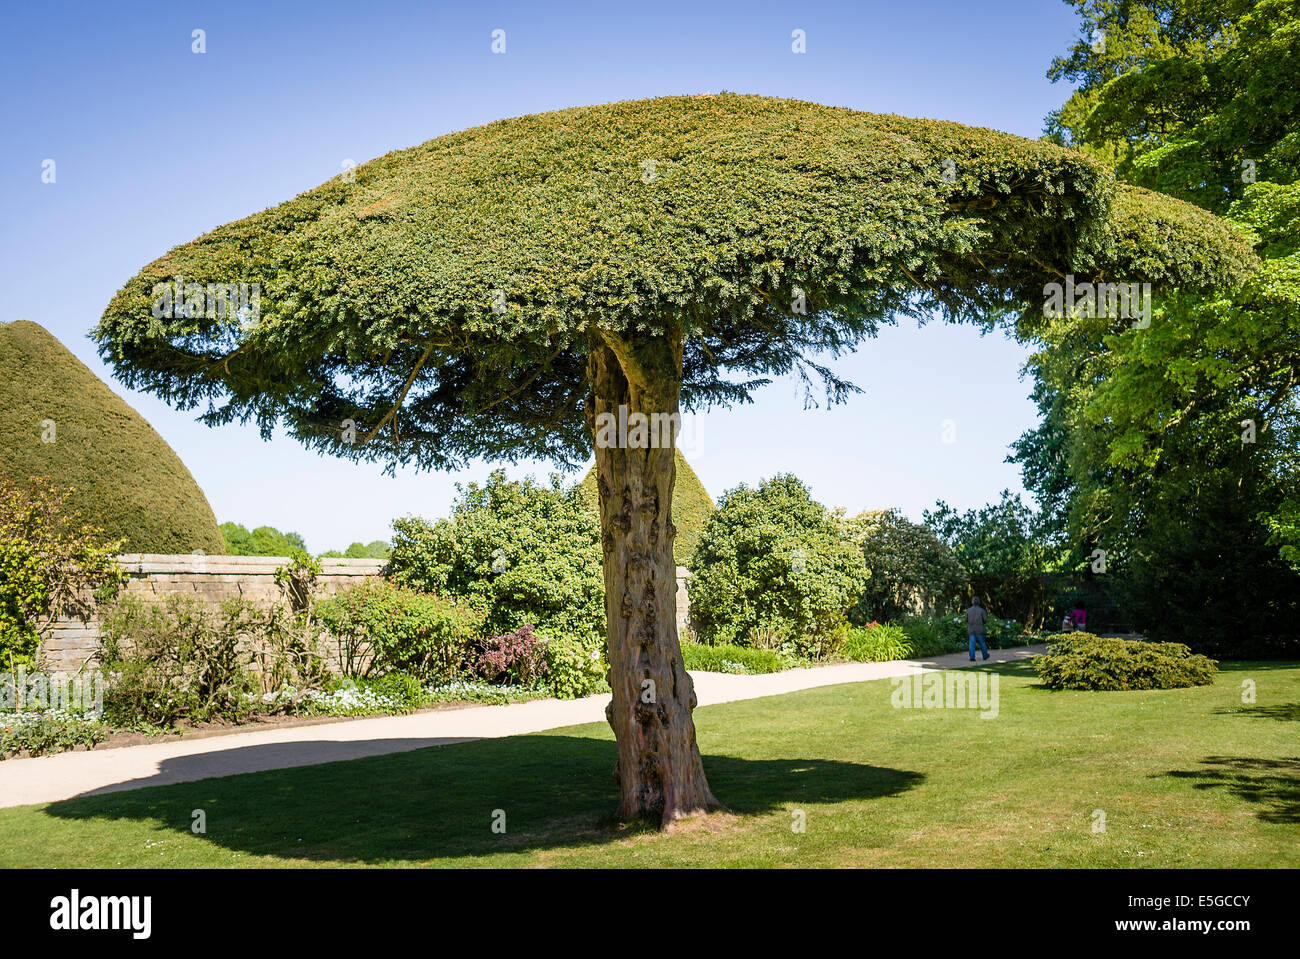 Umbrella shape small yew tree in a stately home garden - Stock Image